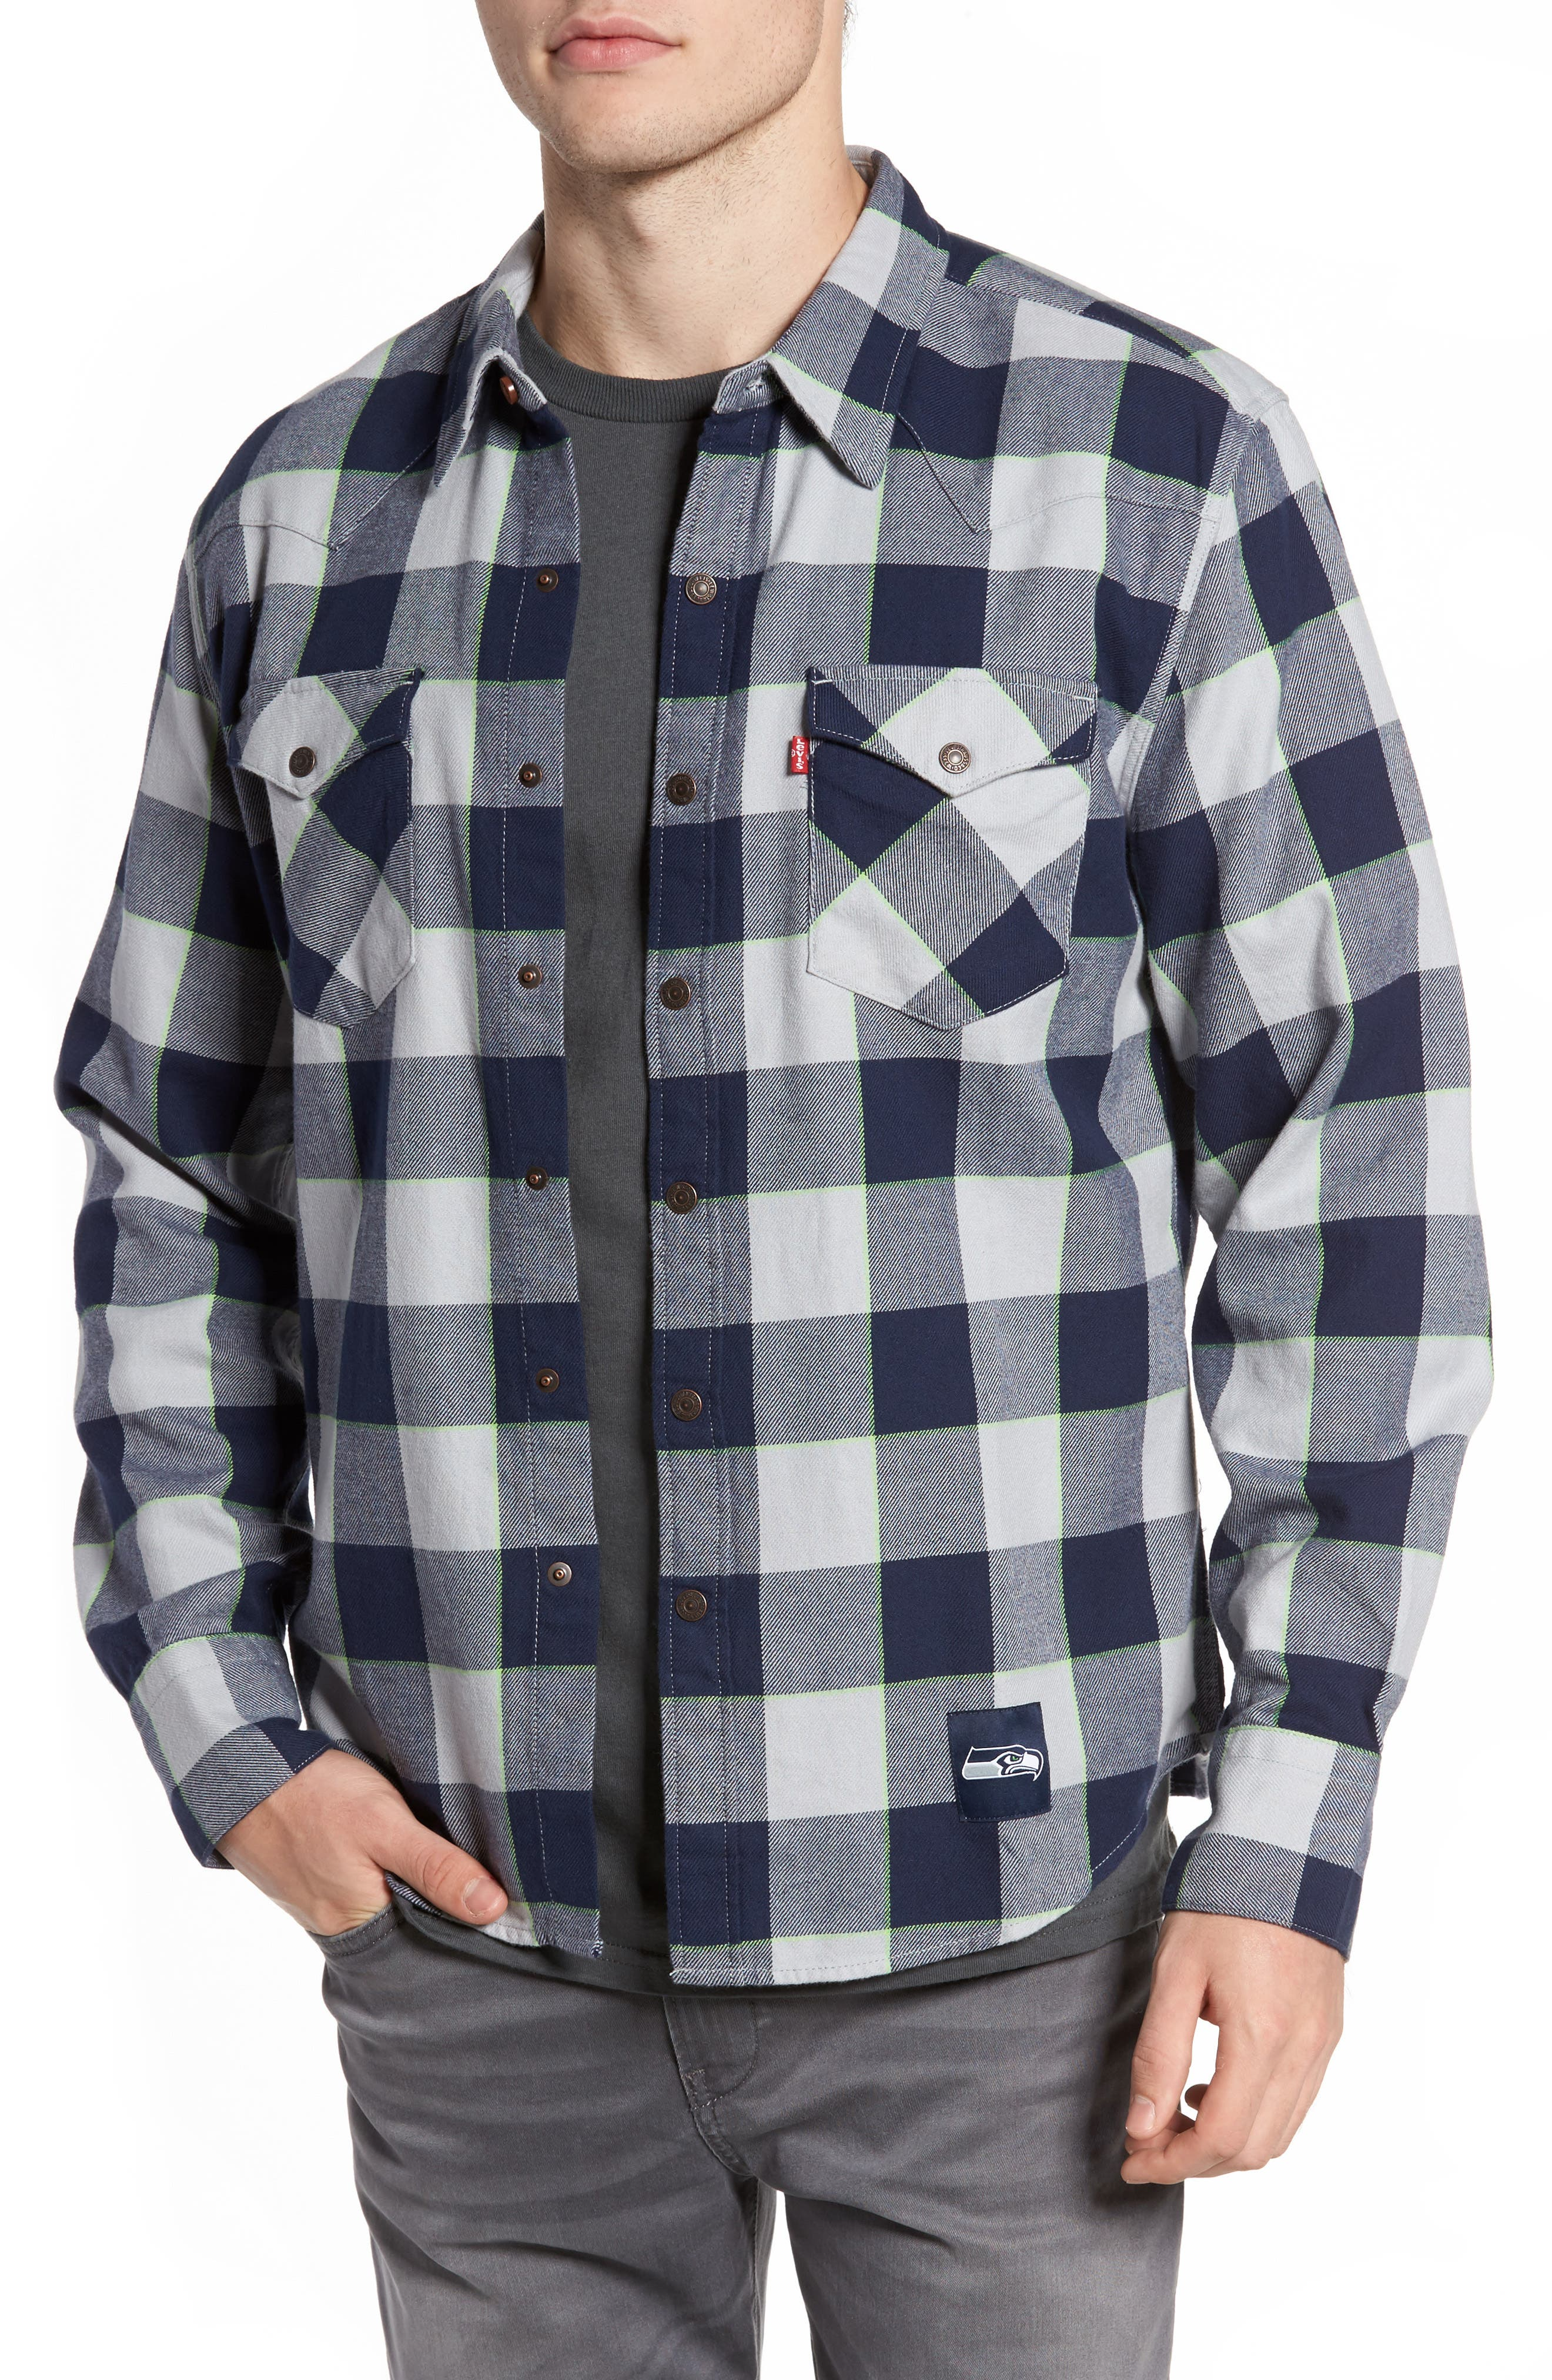 Alternate Image 1 Selected - Levi's® NFL Seahawks - Barstow Plaid Western Shirt